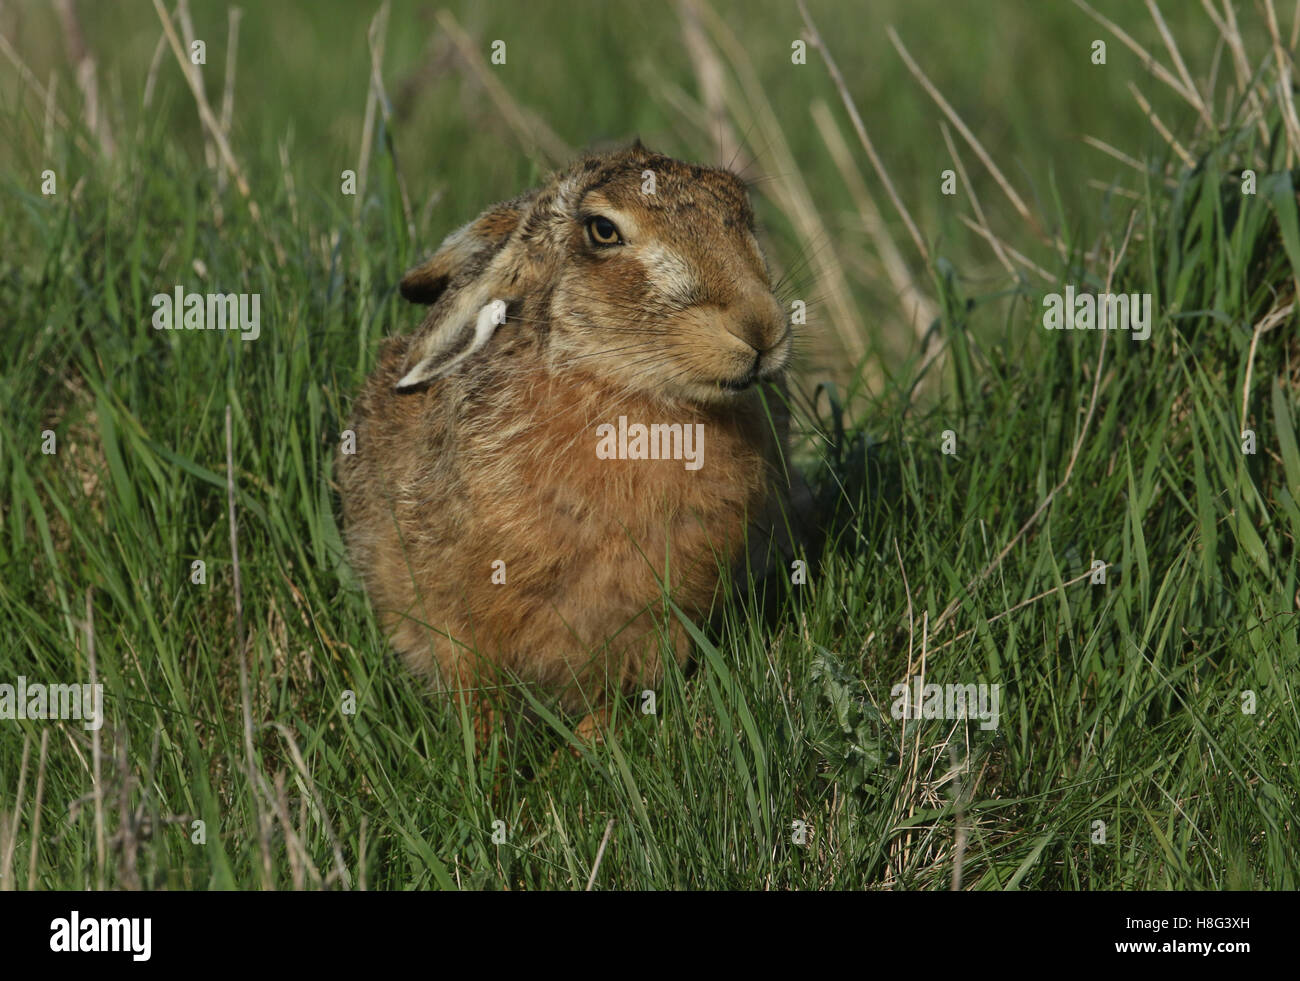 A Brown Hare (Lepus europaeus) eating grass. - Stock Image